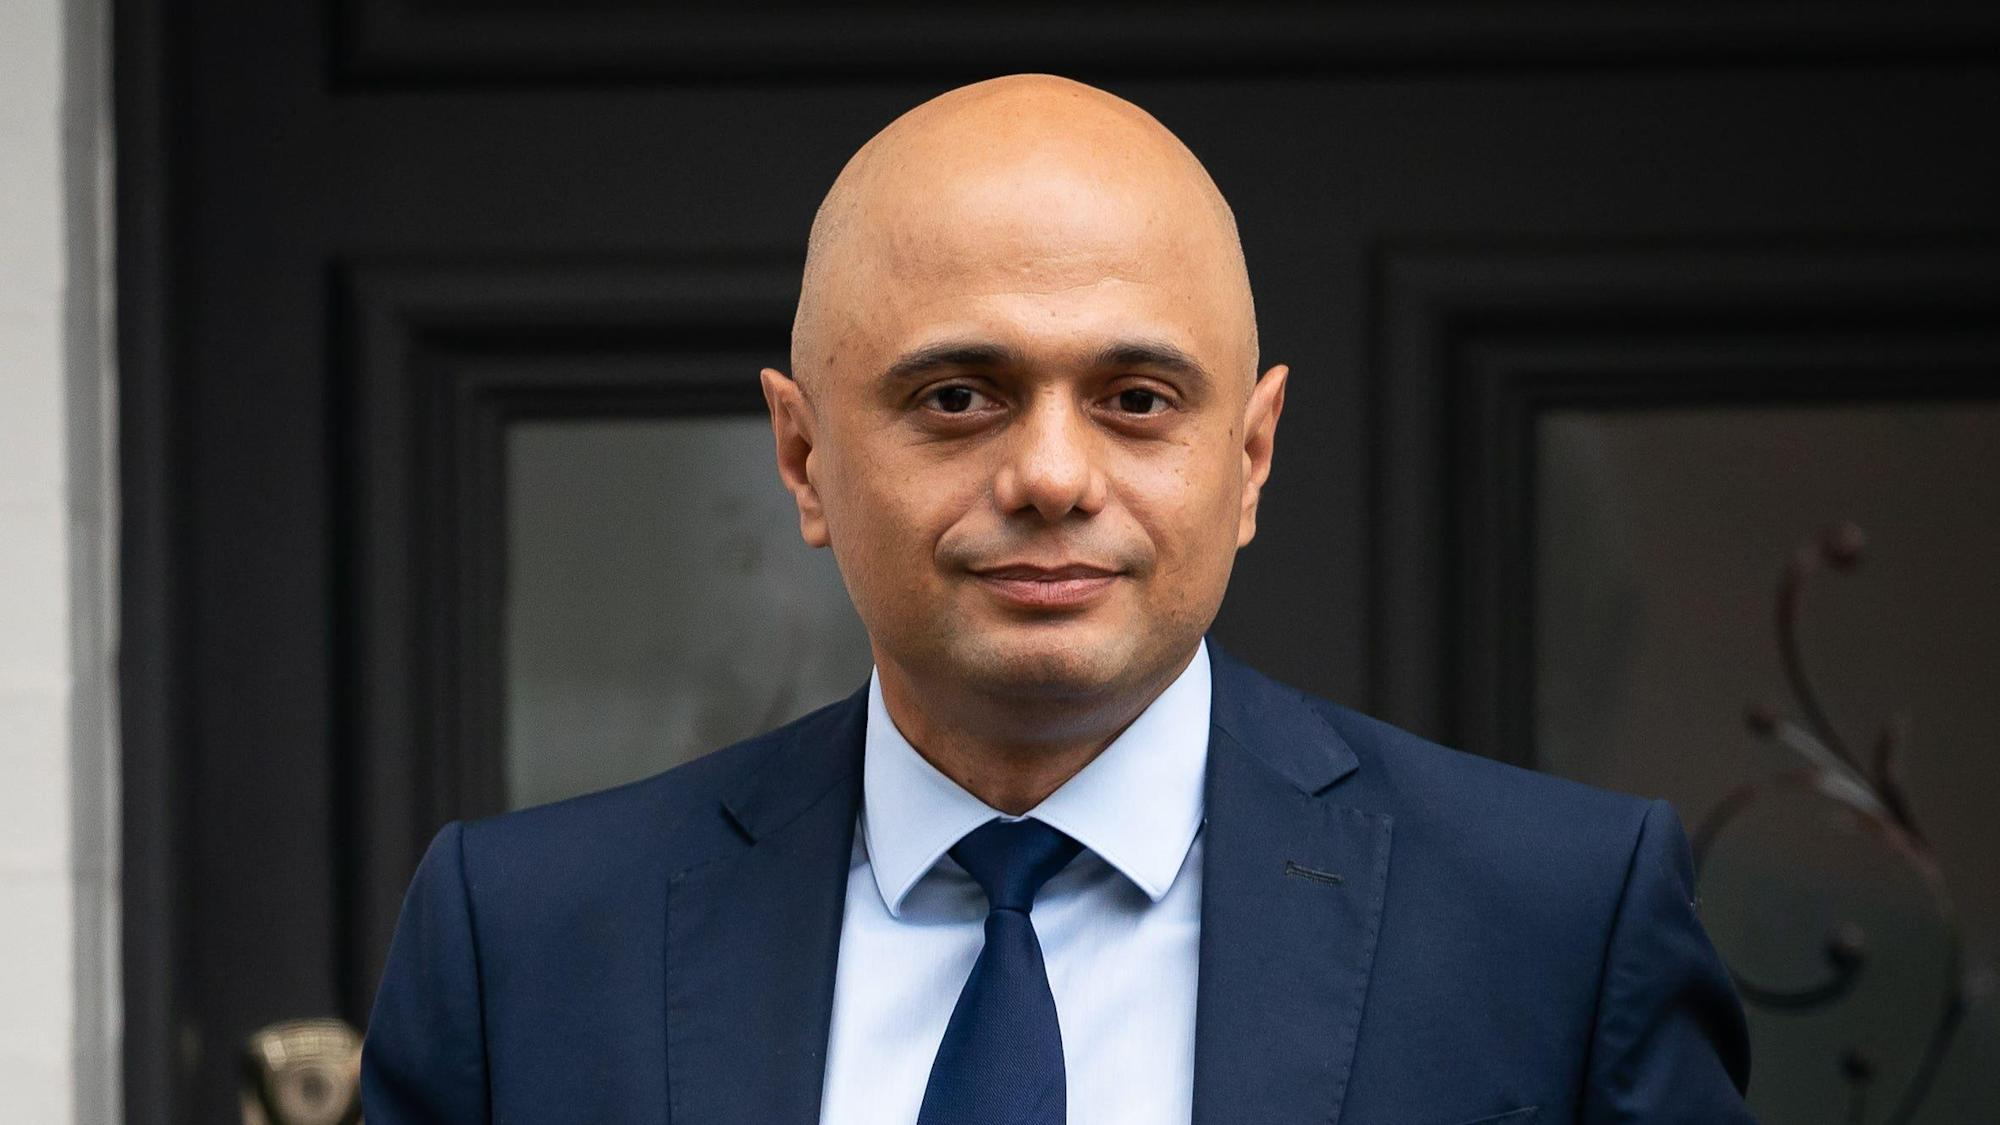 Javid highlights need to open up in the summer ahead of winter flu challenges